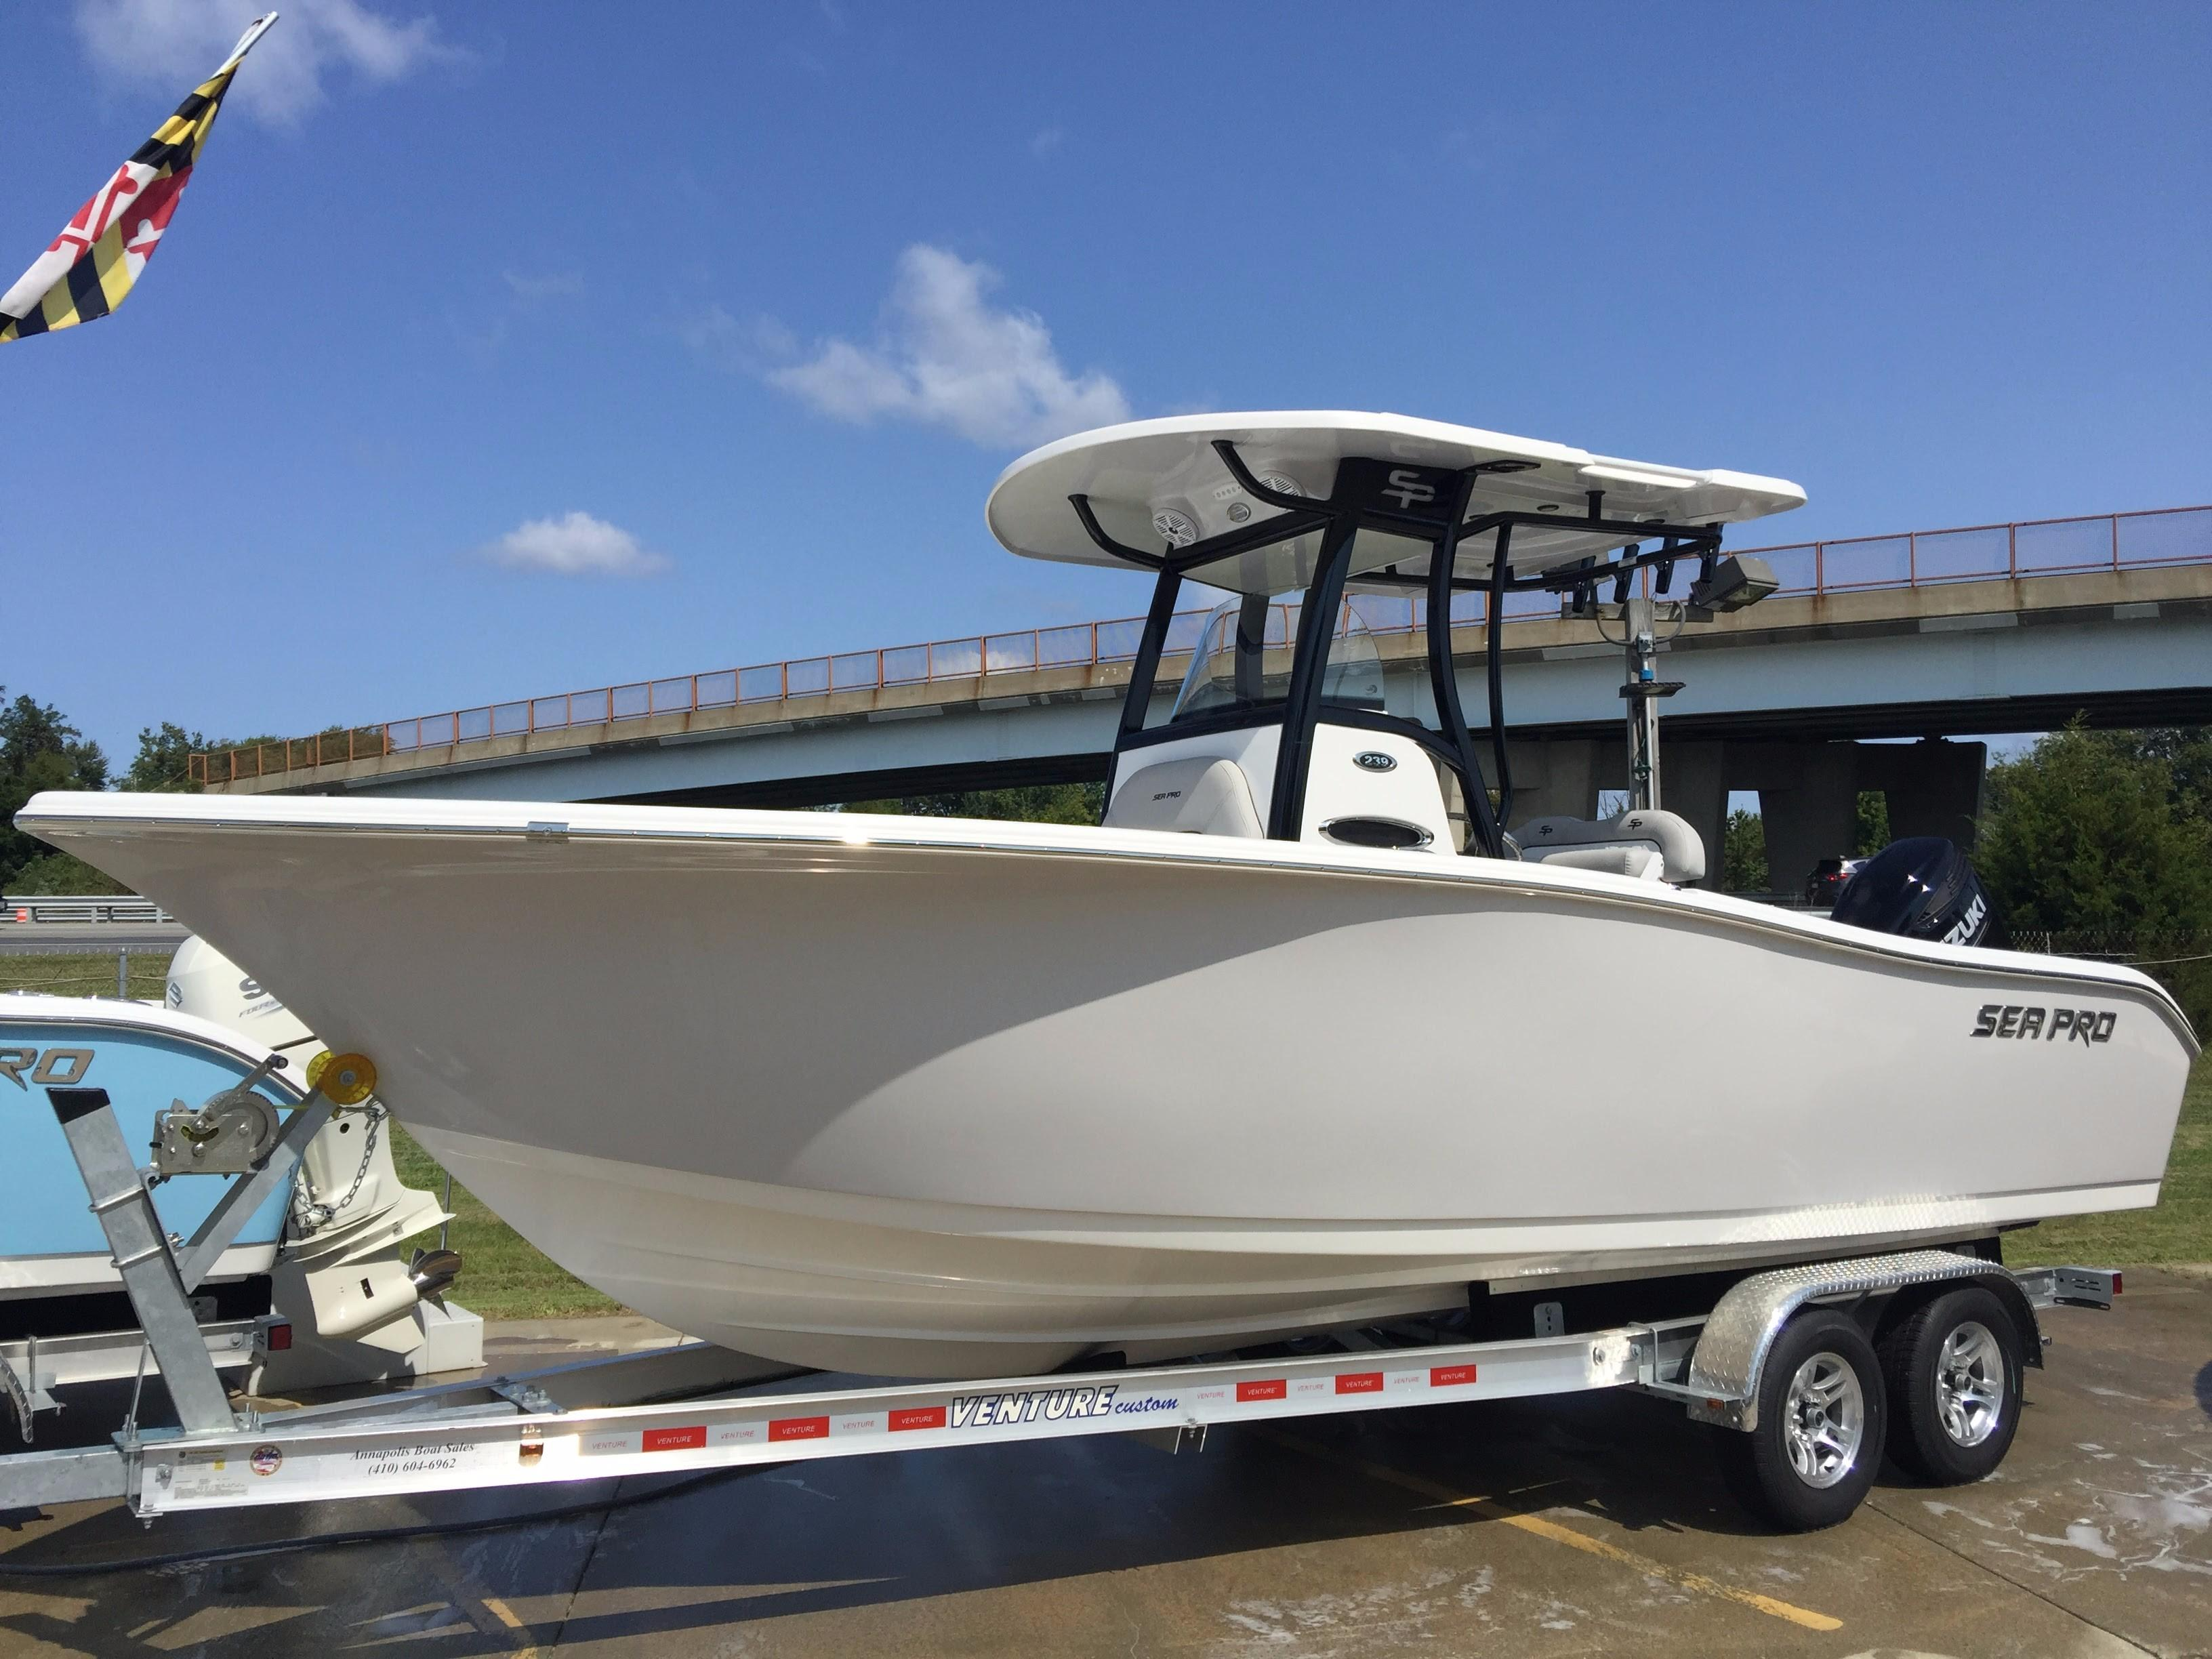 6364383_20170911083256401_1_XLARGE&w=3264&h=2448&t=1505148372000 sea pro boats for sale yachtworld  at gsmx.co